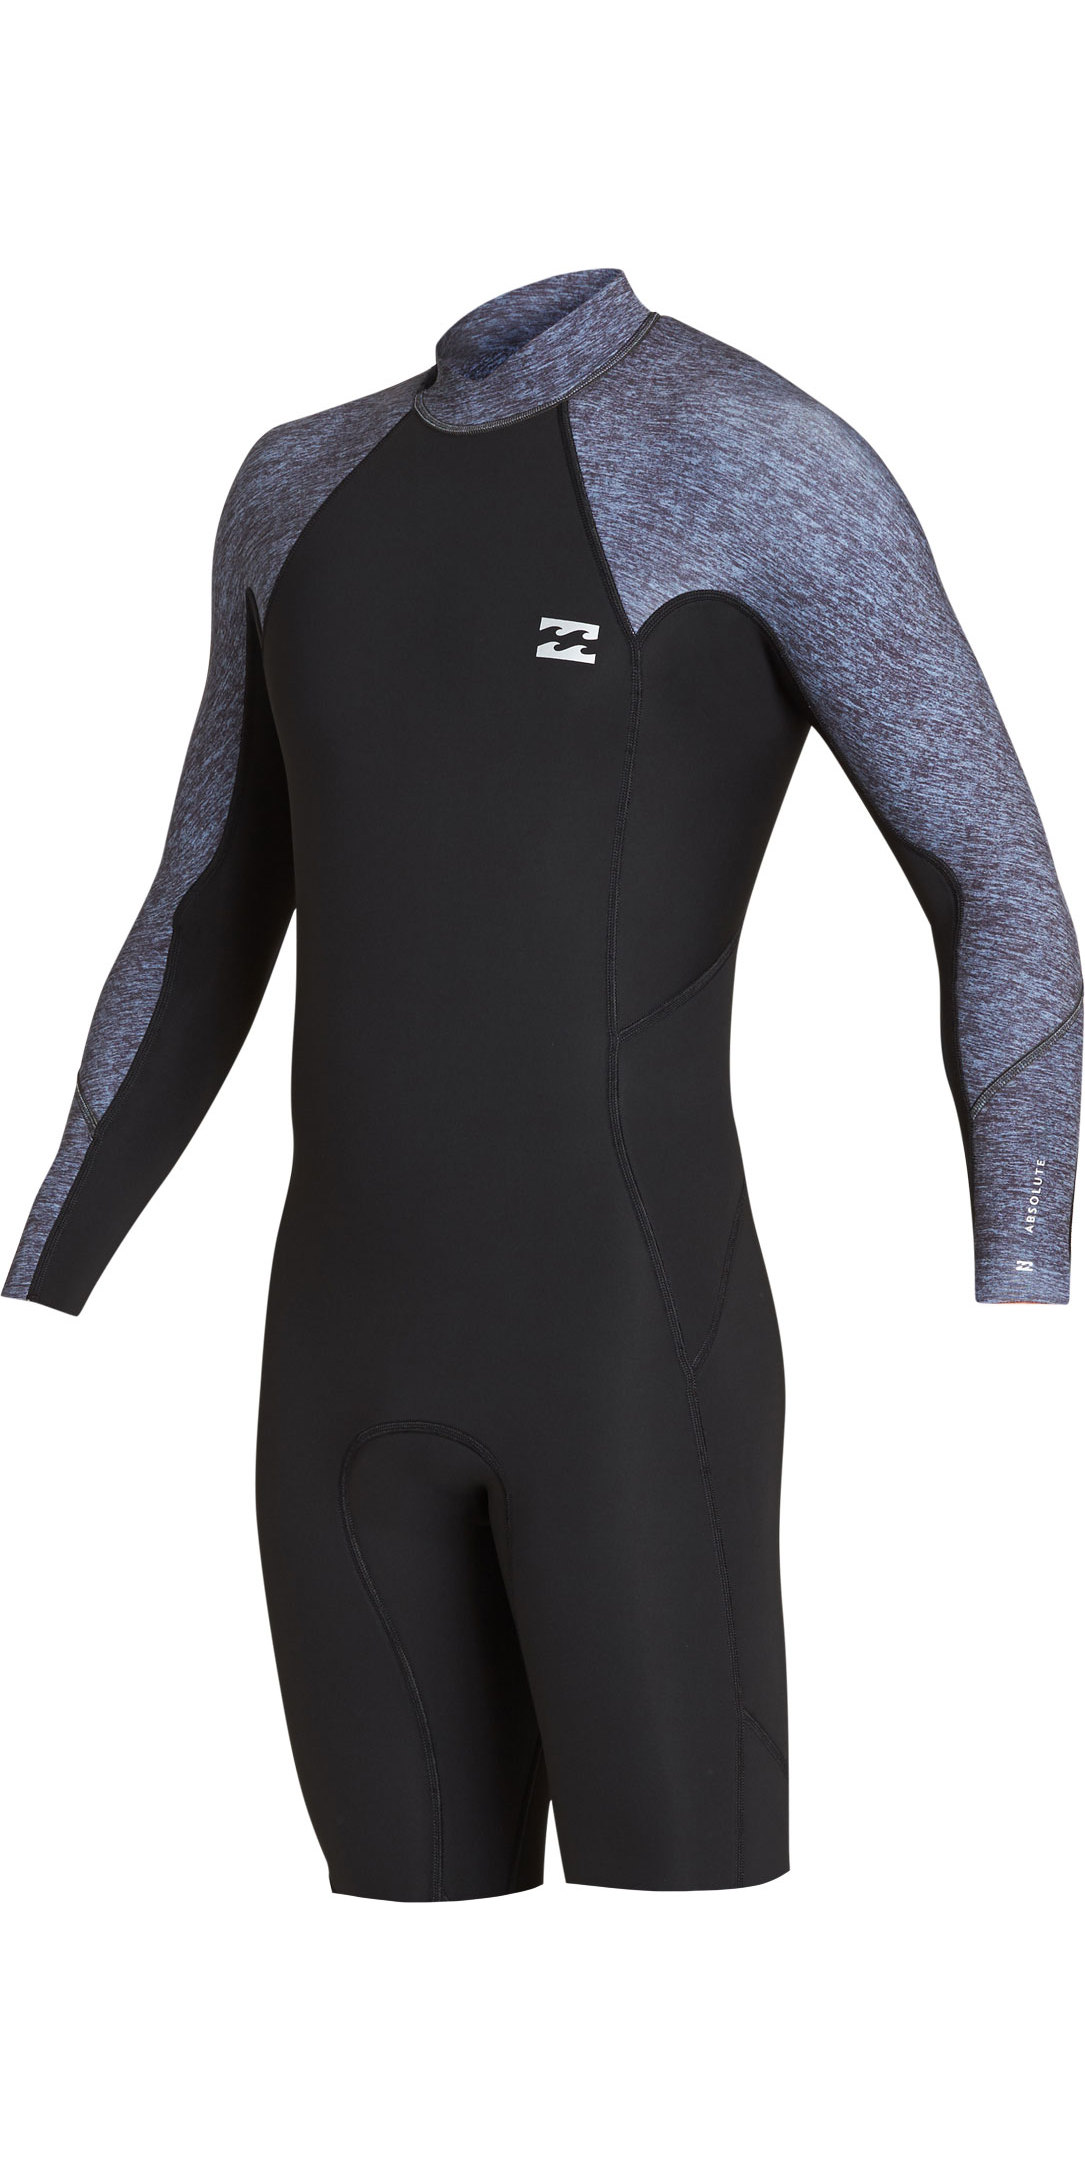 3e1edeb2e0 2019 Billabong Mens 2mm Absolute Long Sleeve GBS Back Zip Shorty Wetsuit  Grey Heather N42M21